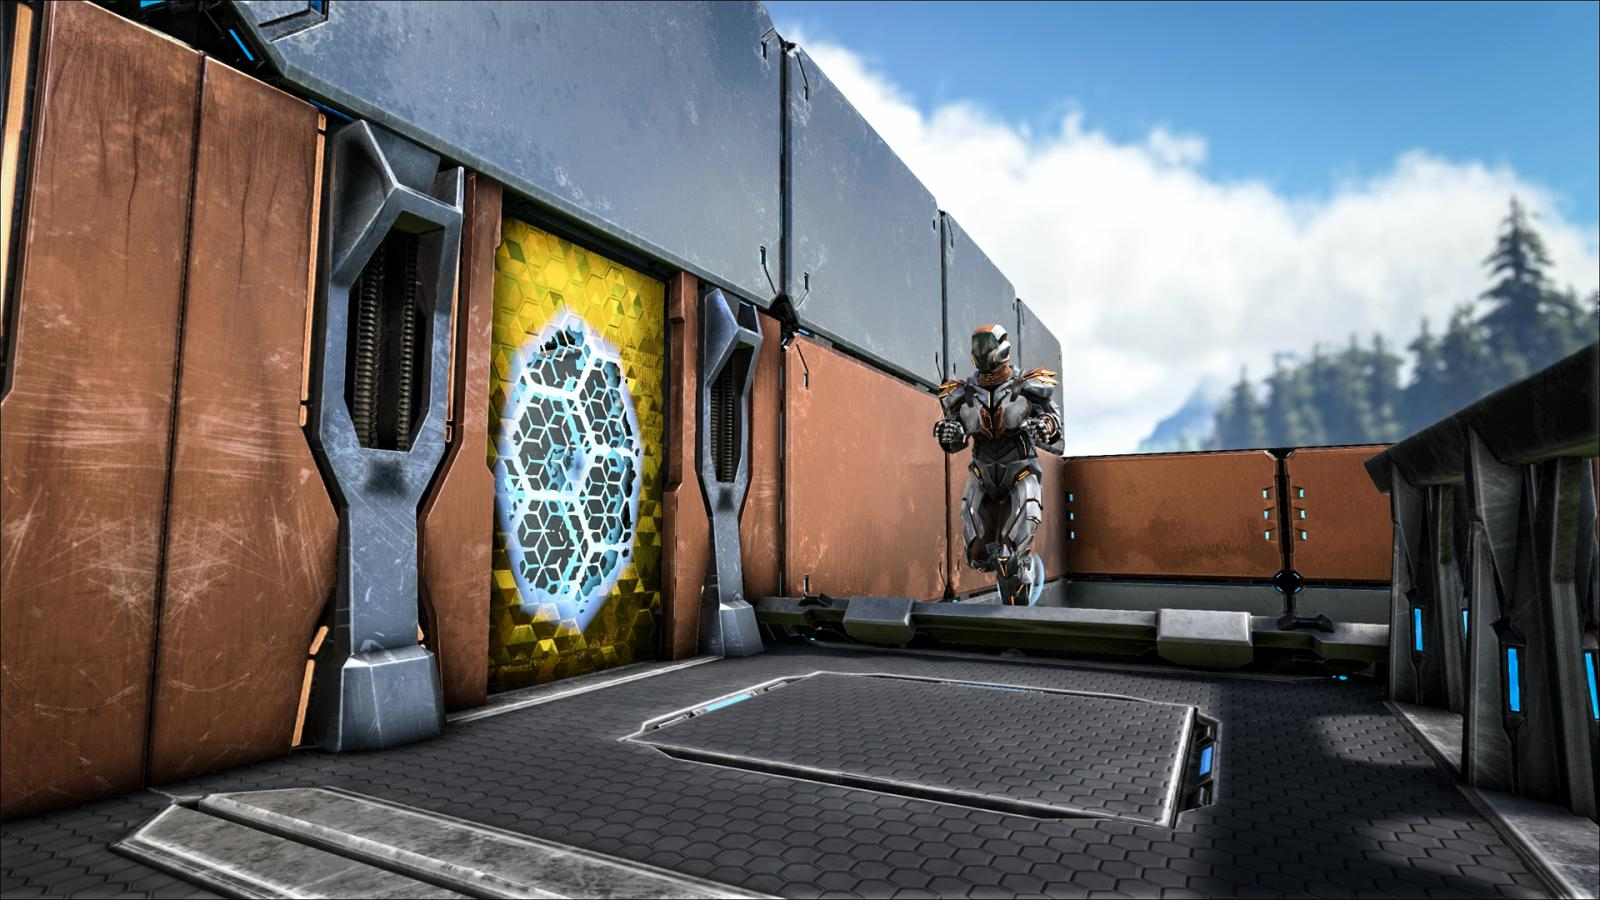 Ark survival evolved v255 guide how to get use the tek tileset ark survival evolved v255 guide how to get use the tek tileset with without cheats player malvernweather Gallery